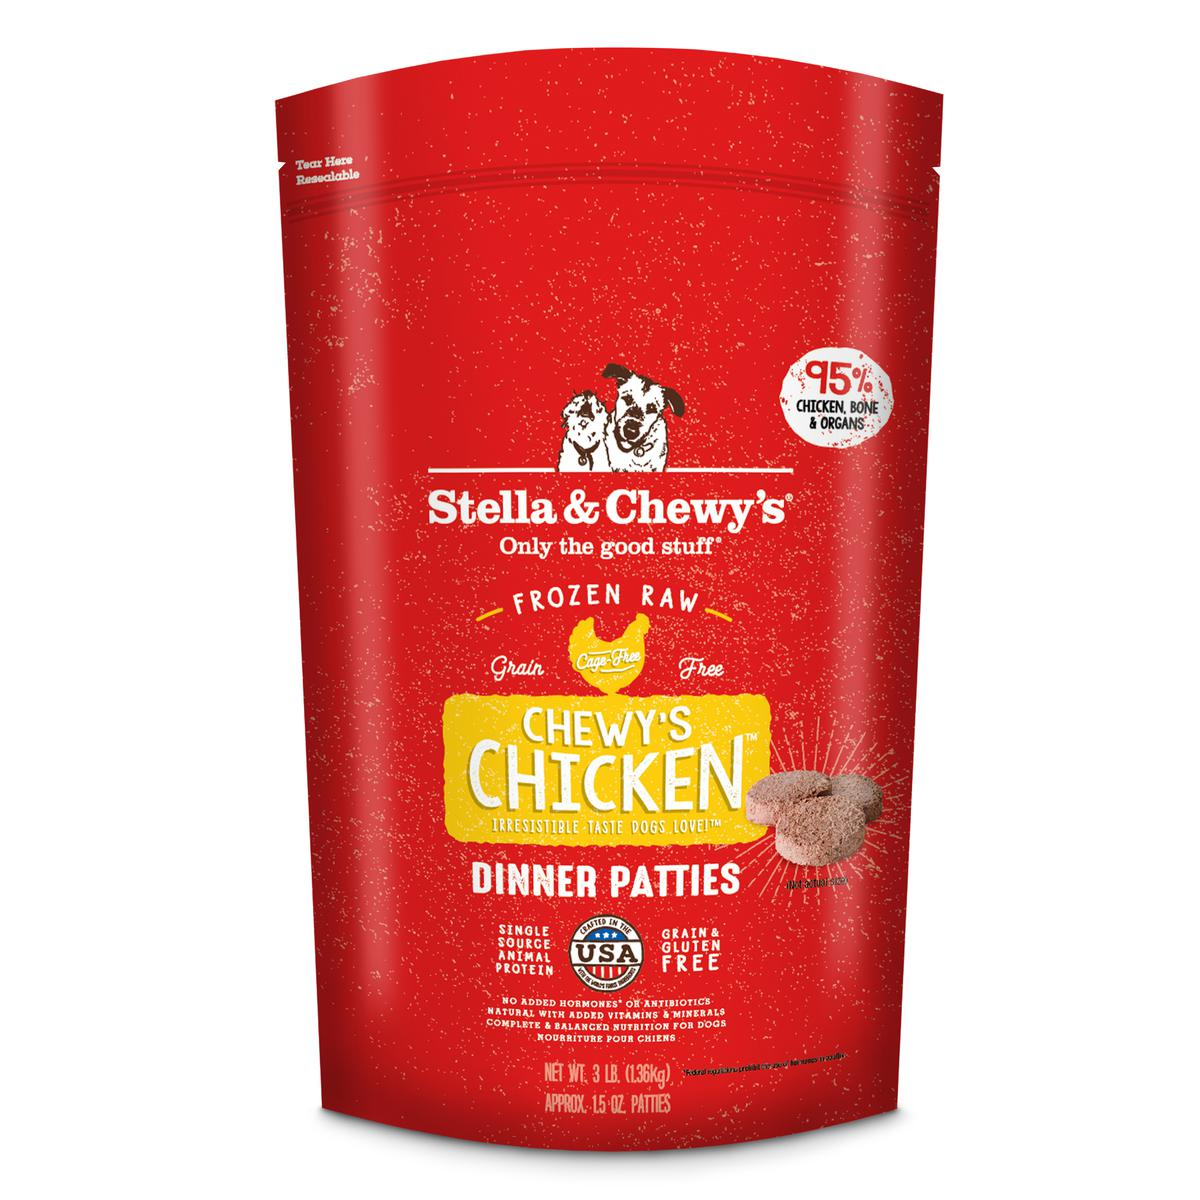 Stella & Chewy's Chewy's Chicken 1.5-oz Dinner Patties Grain-Free Raw Frozen Dog Food, 3-lb